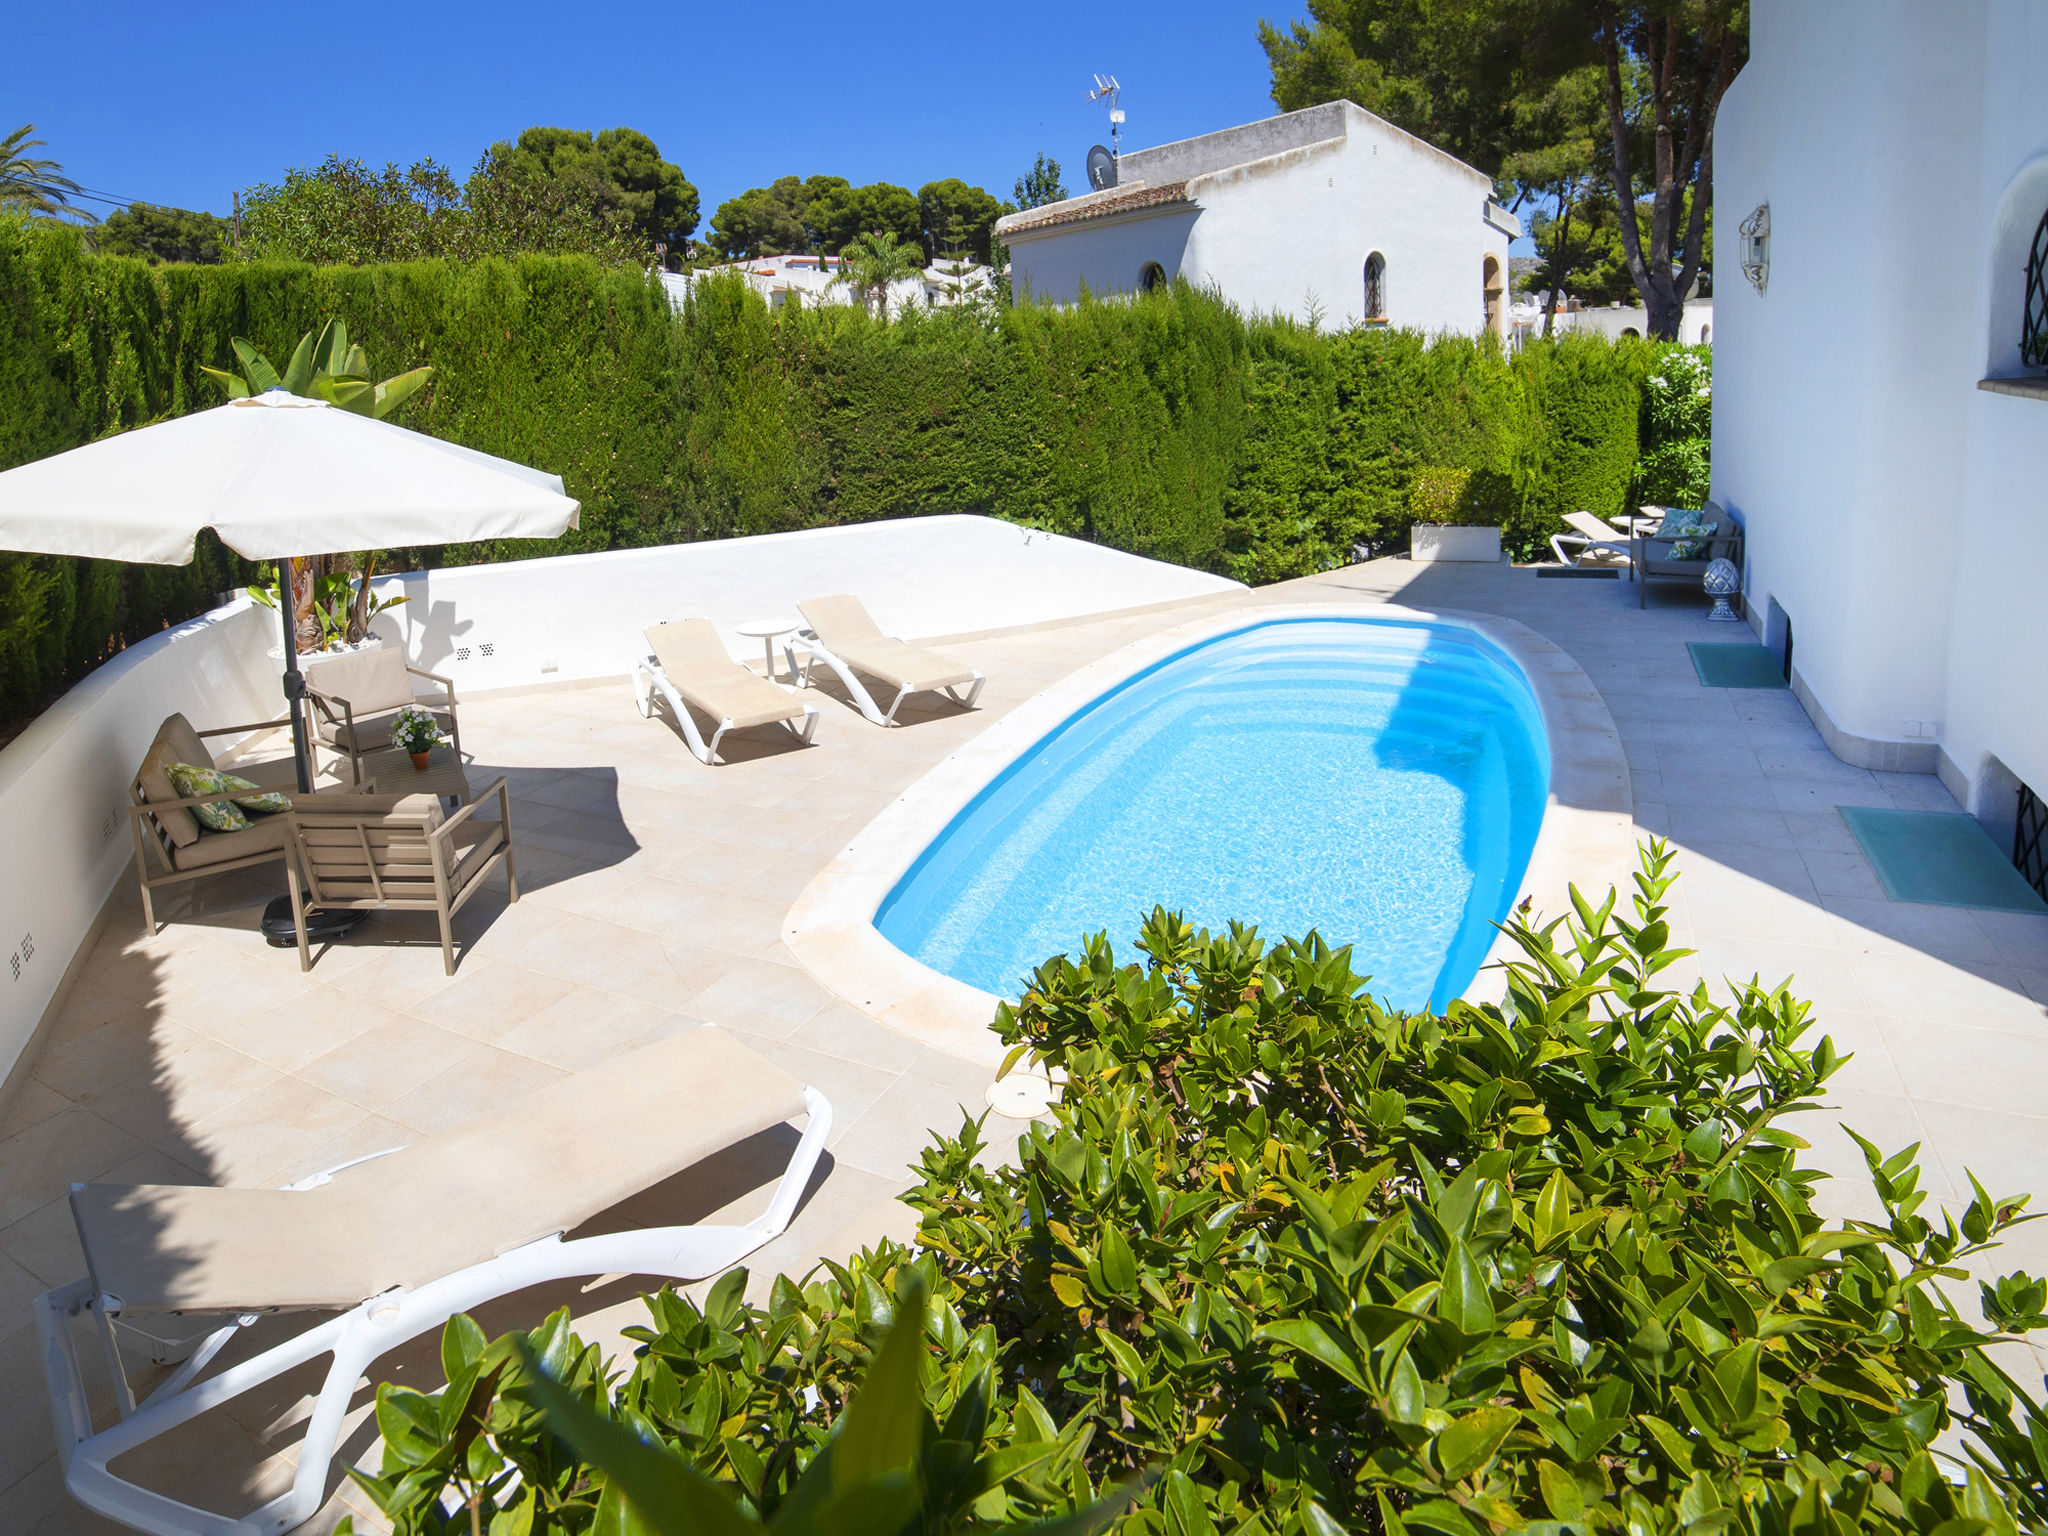 Villa The Unes,Moraira,Costa Blanca #2